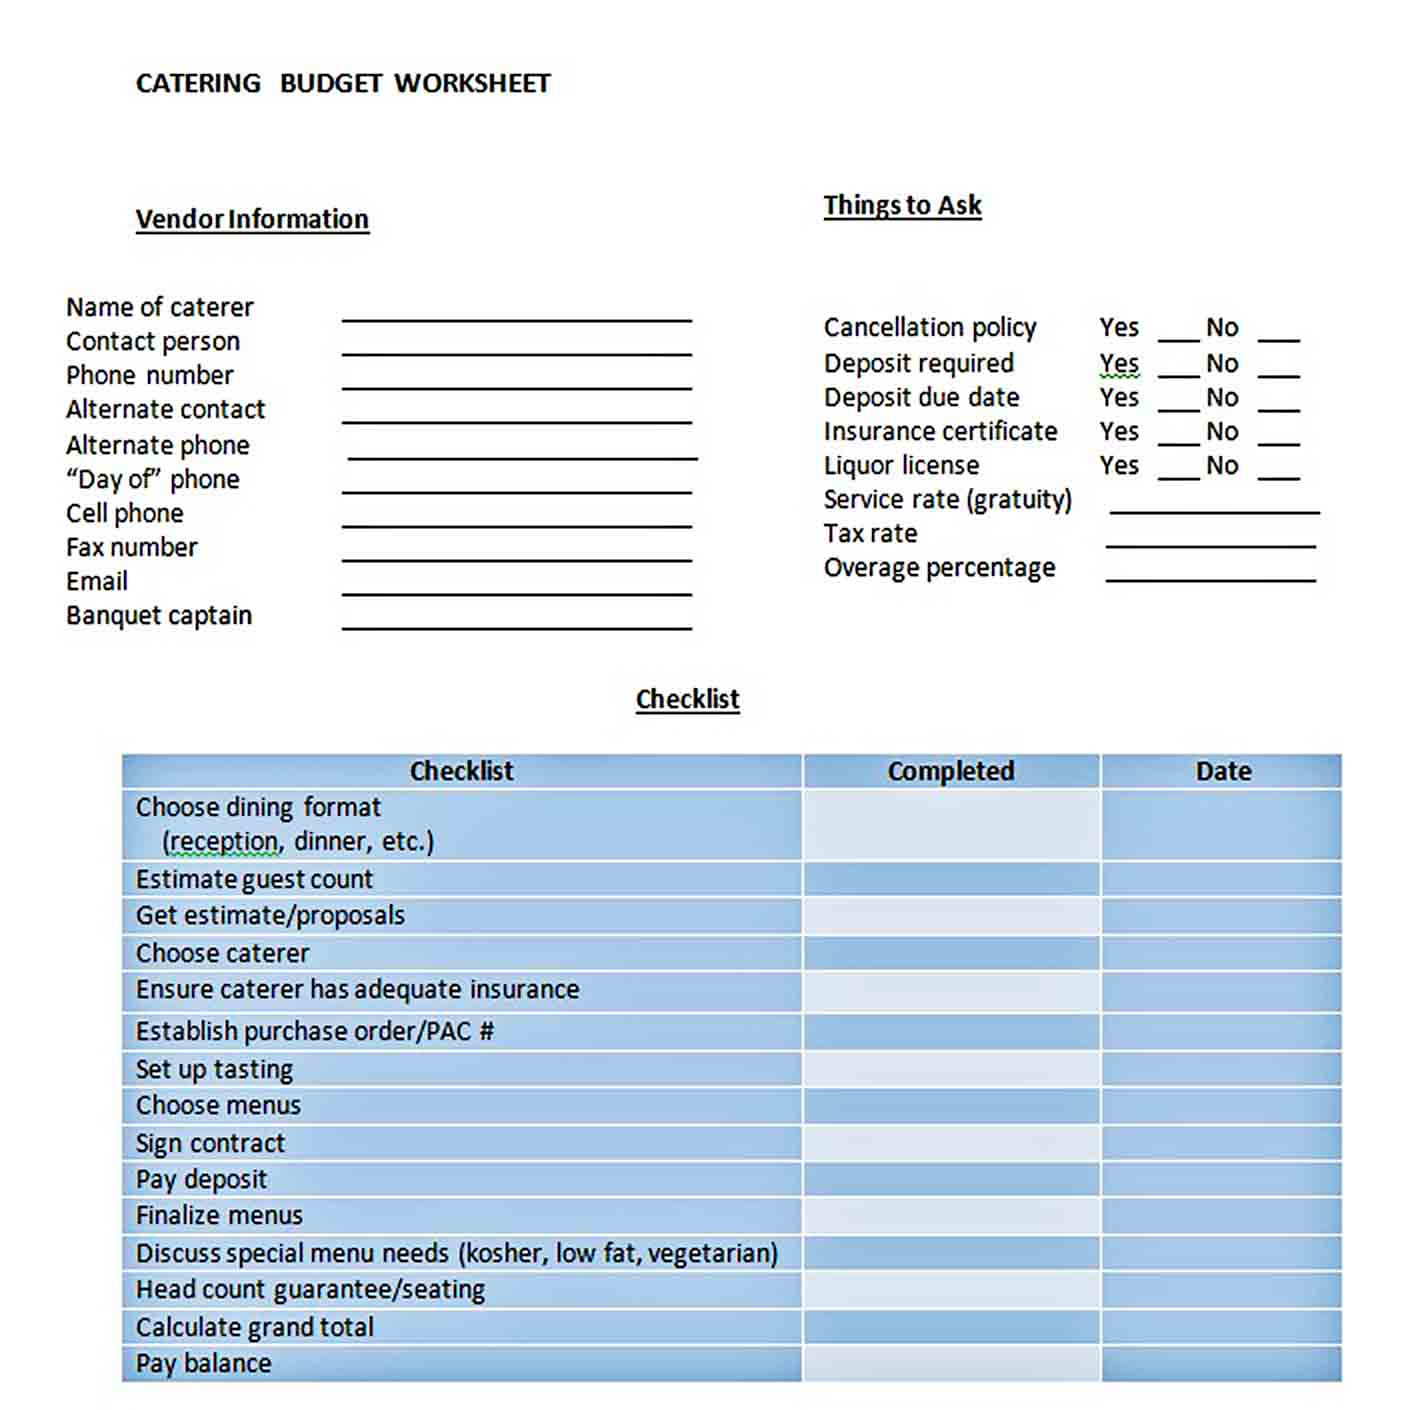 Catering Budget Worksheet sample